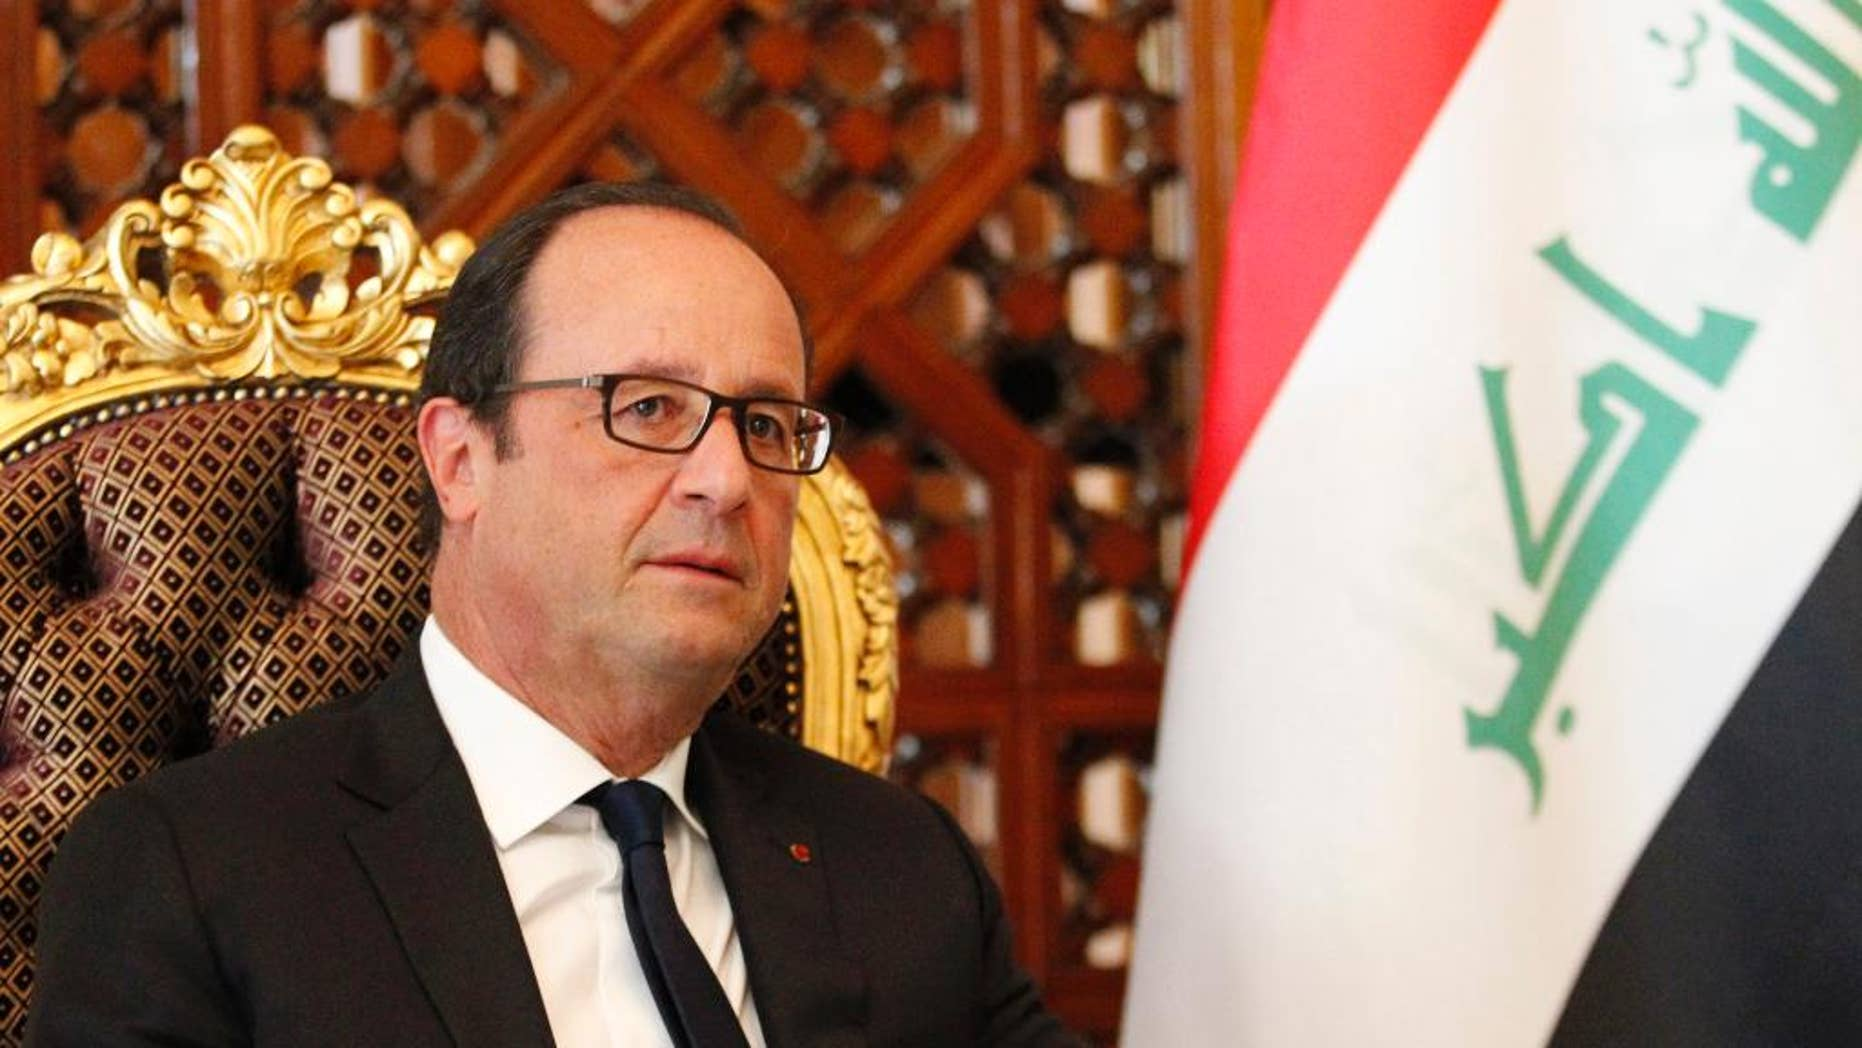 French President Francois Hollande is seen after his arrival at Baghdad Airport in Baghdad, Iraq, Friday, Sept. 12, 2014. Hollande expressed his solidarity with Iraq on a visit to Baghdad on Friday, as his country prepares for possible airstrikes with a U.S.-led coalition against extremists who have seized territory around the region. (AP Photo/Thaier Al-Sudani, Pool)